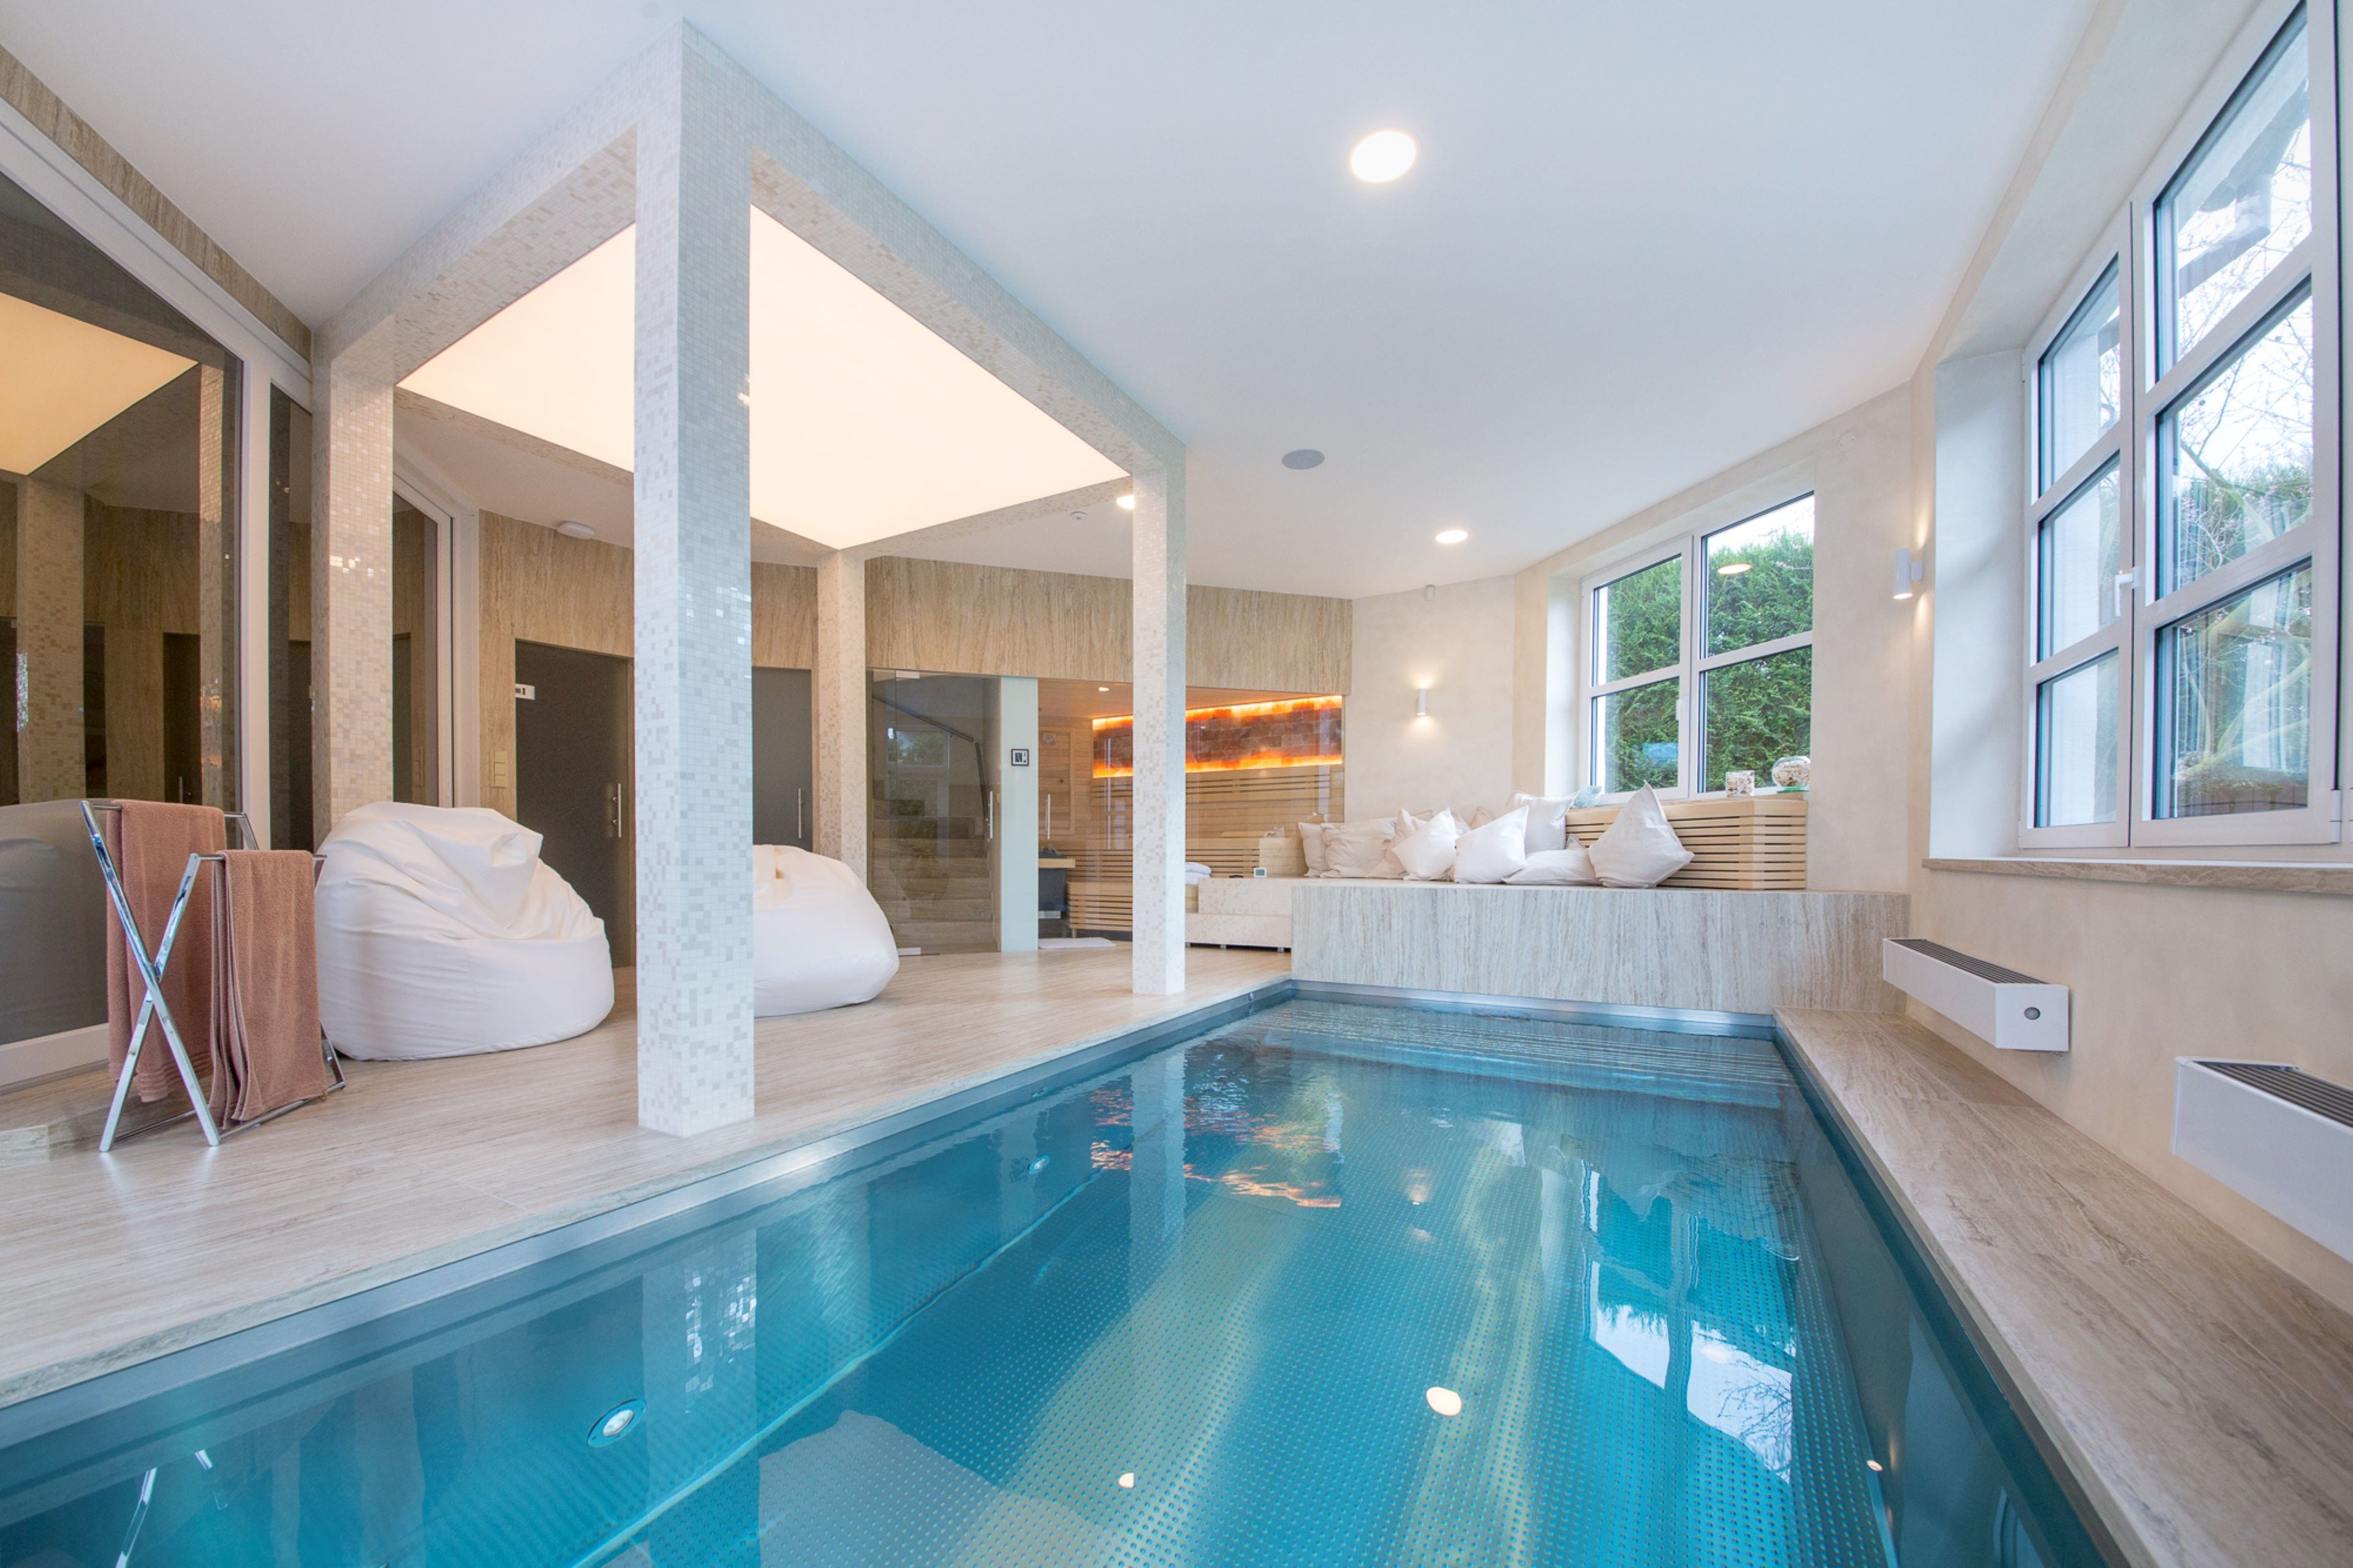 Atypically shaped indoor pool with massage bench